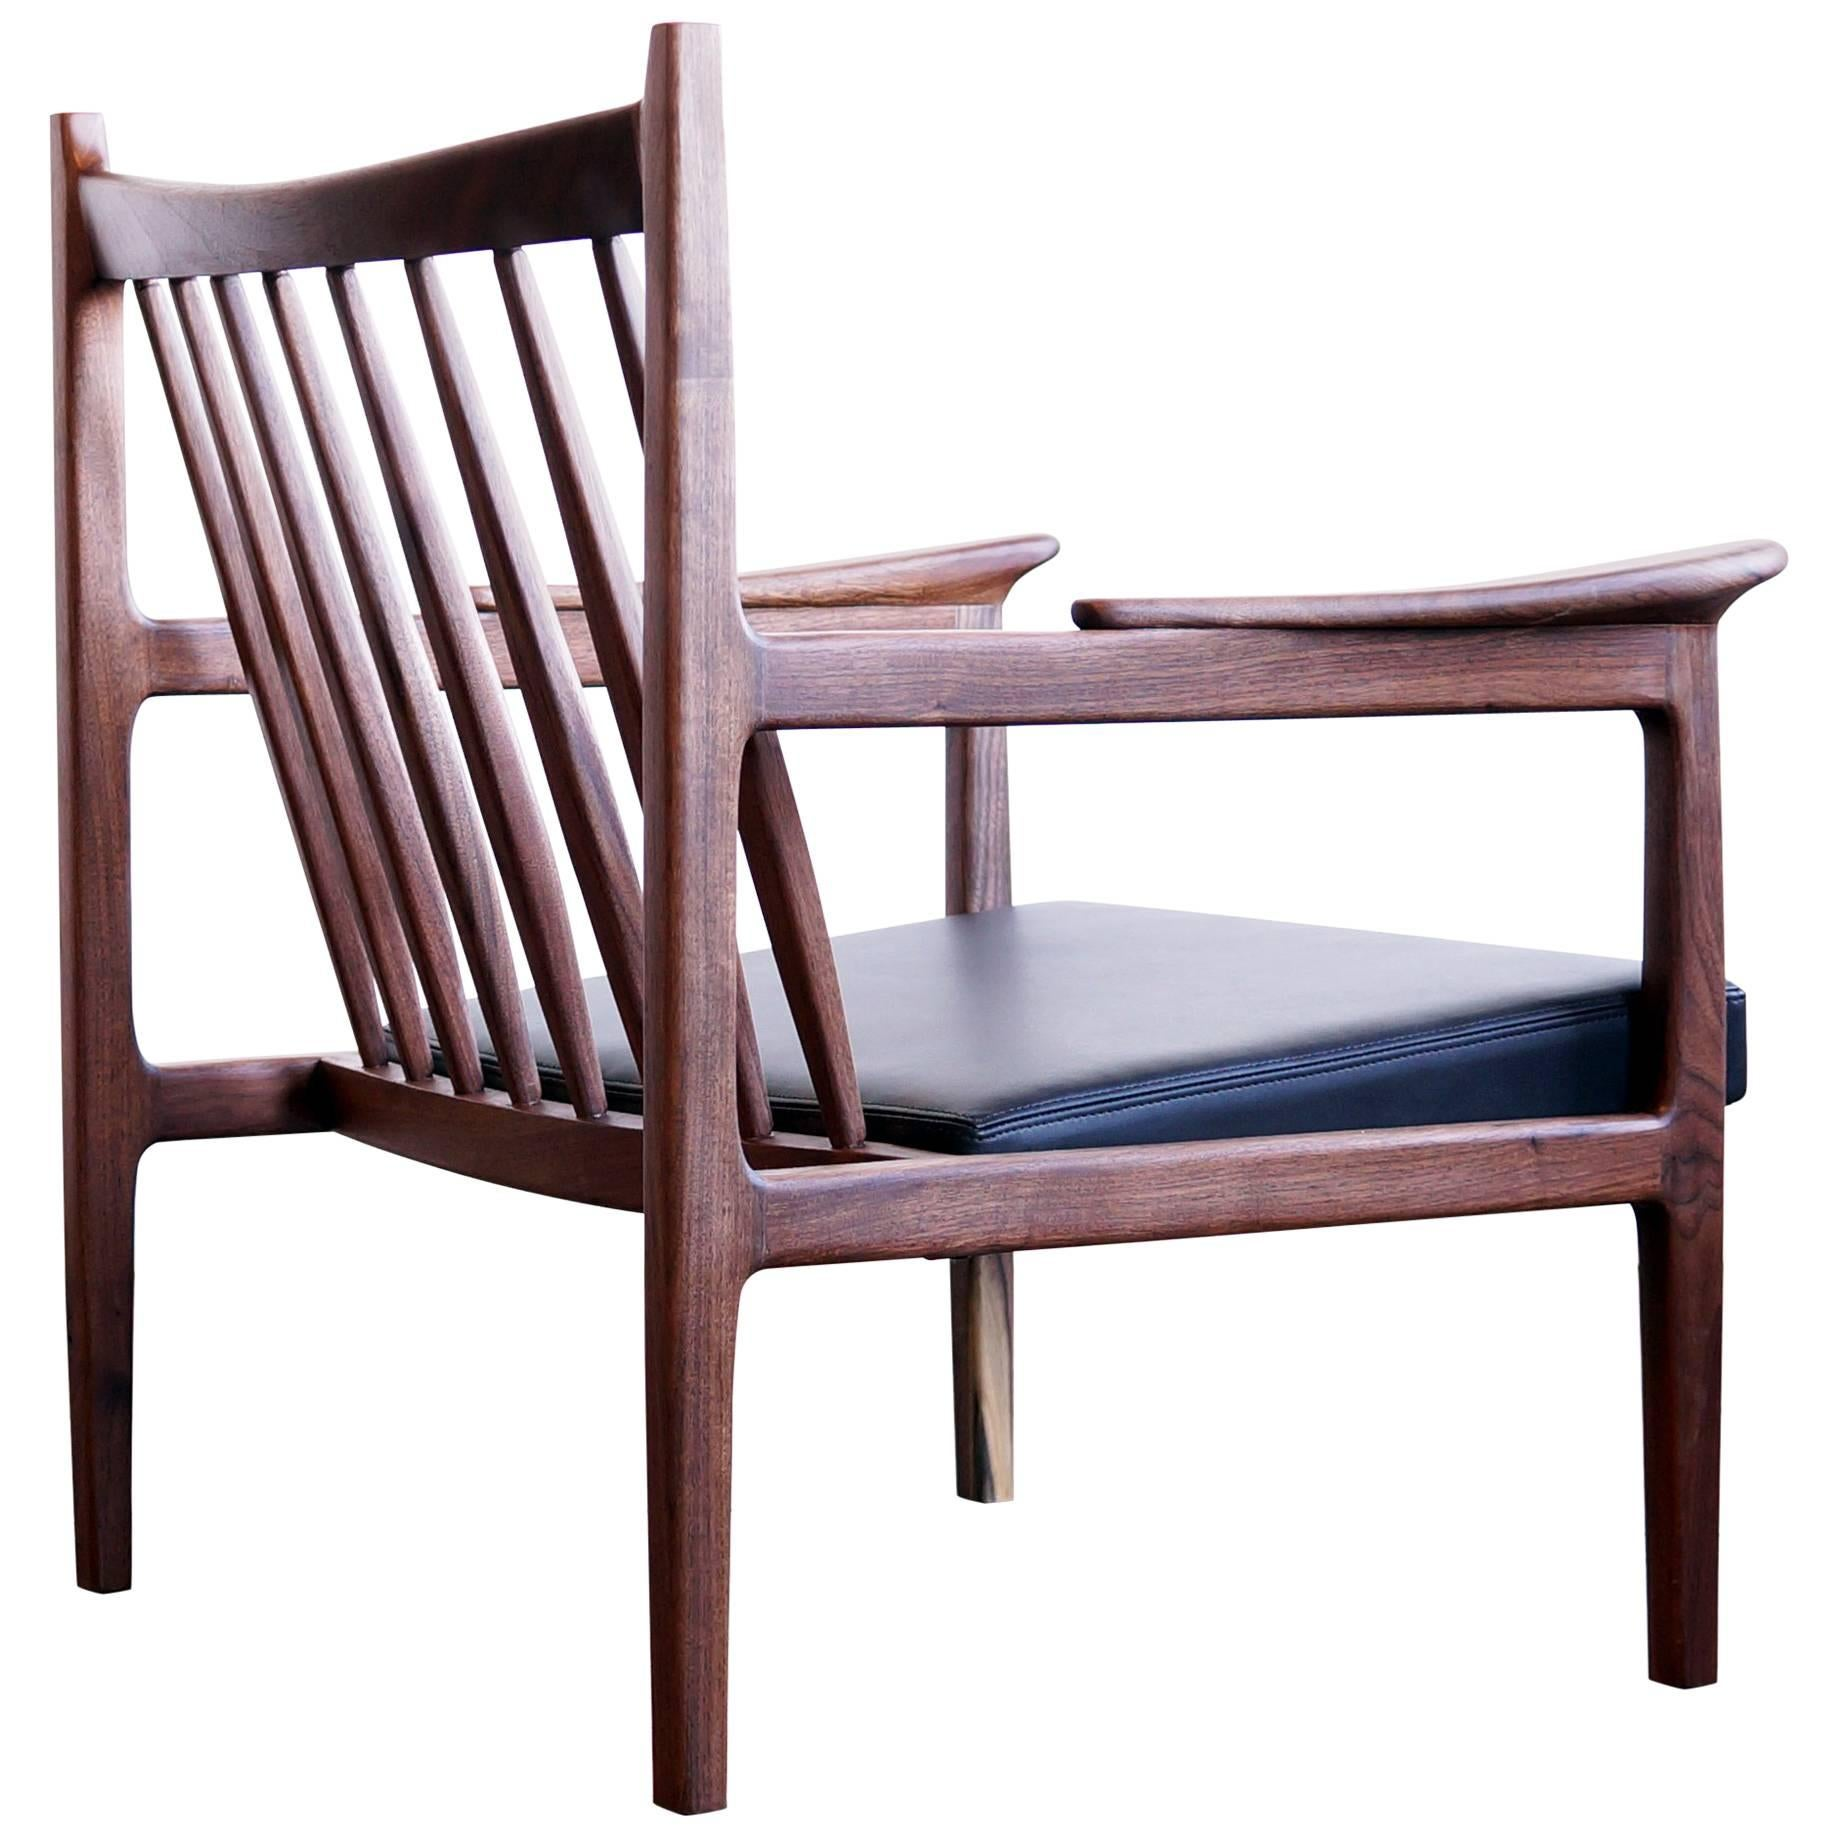 C10 contemporary handmade upholstered lounge chair in walnut and leather for sale at 1stdibs